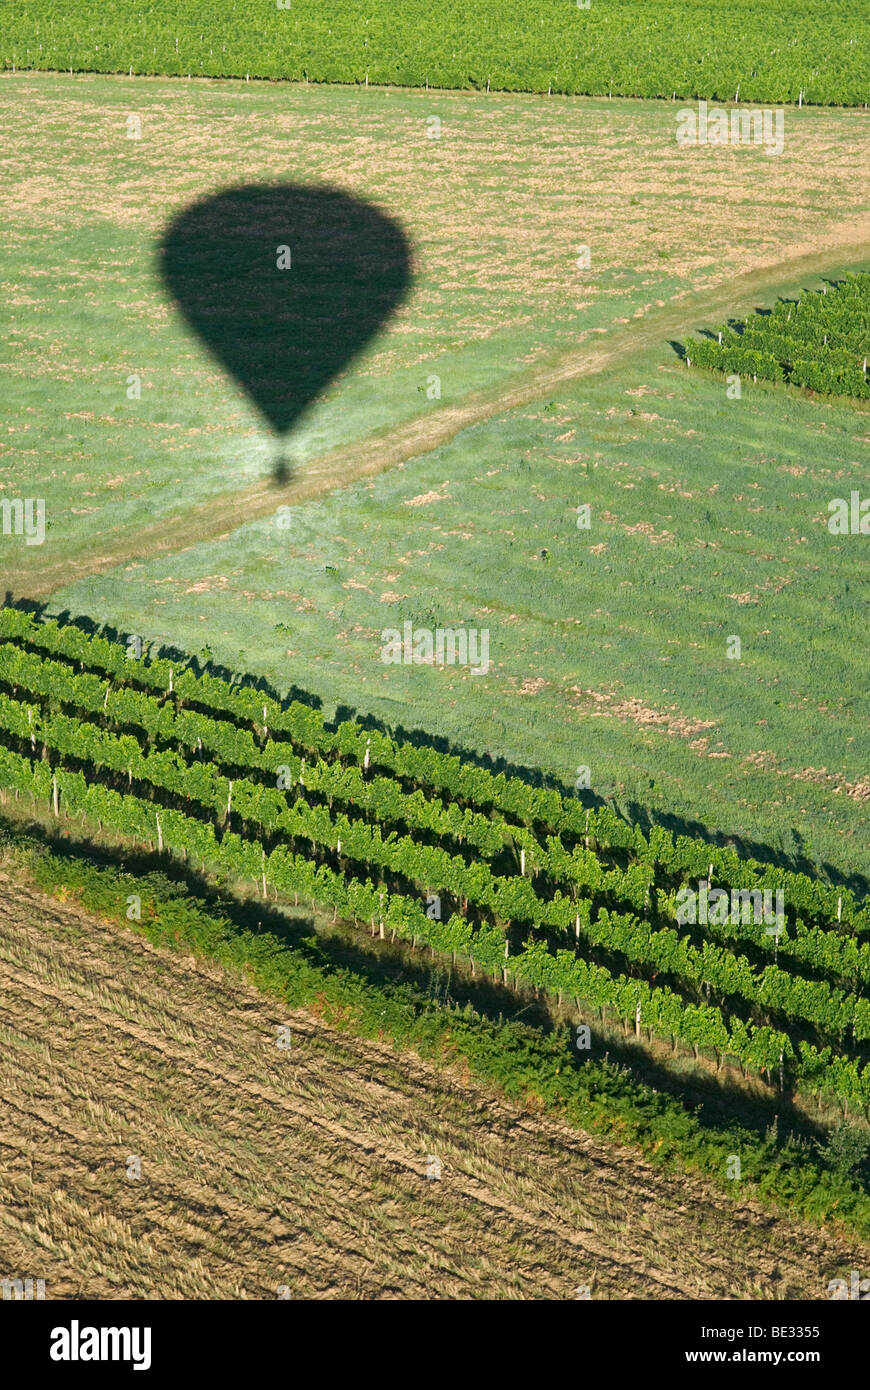 aerial view from hot air balloon basket looking down over harvested fields and vineyards in the Dordoigne, France - Stock Image